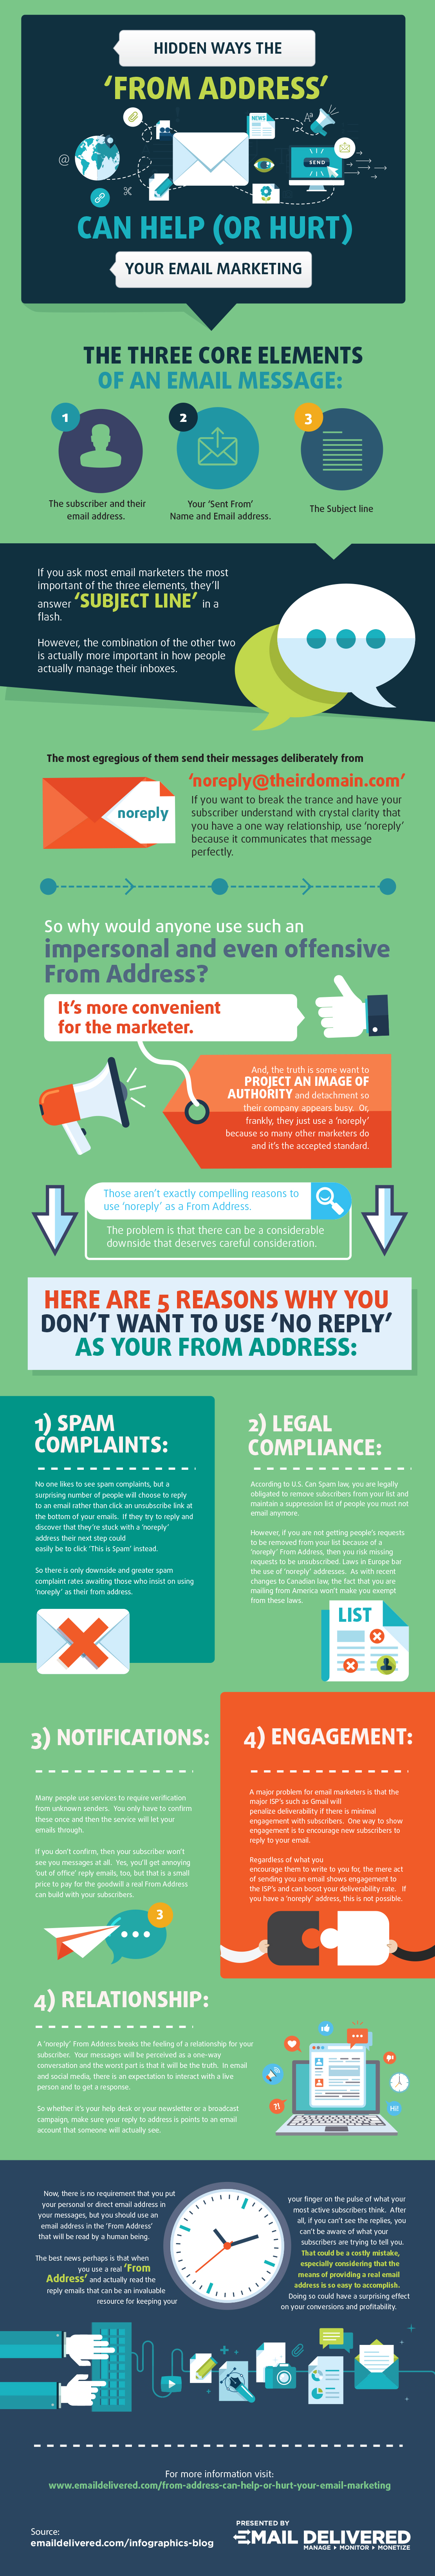 from address can help or hurt email marketing